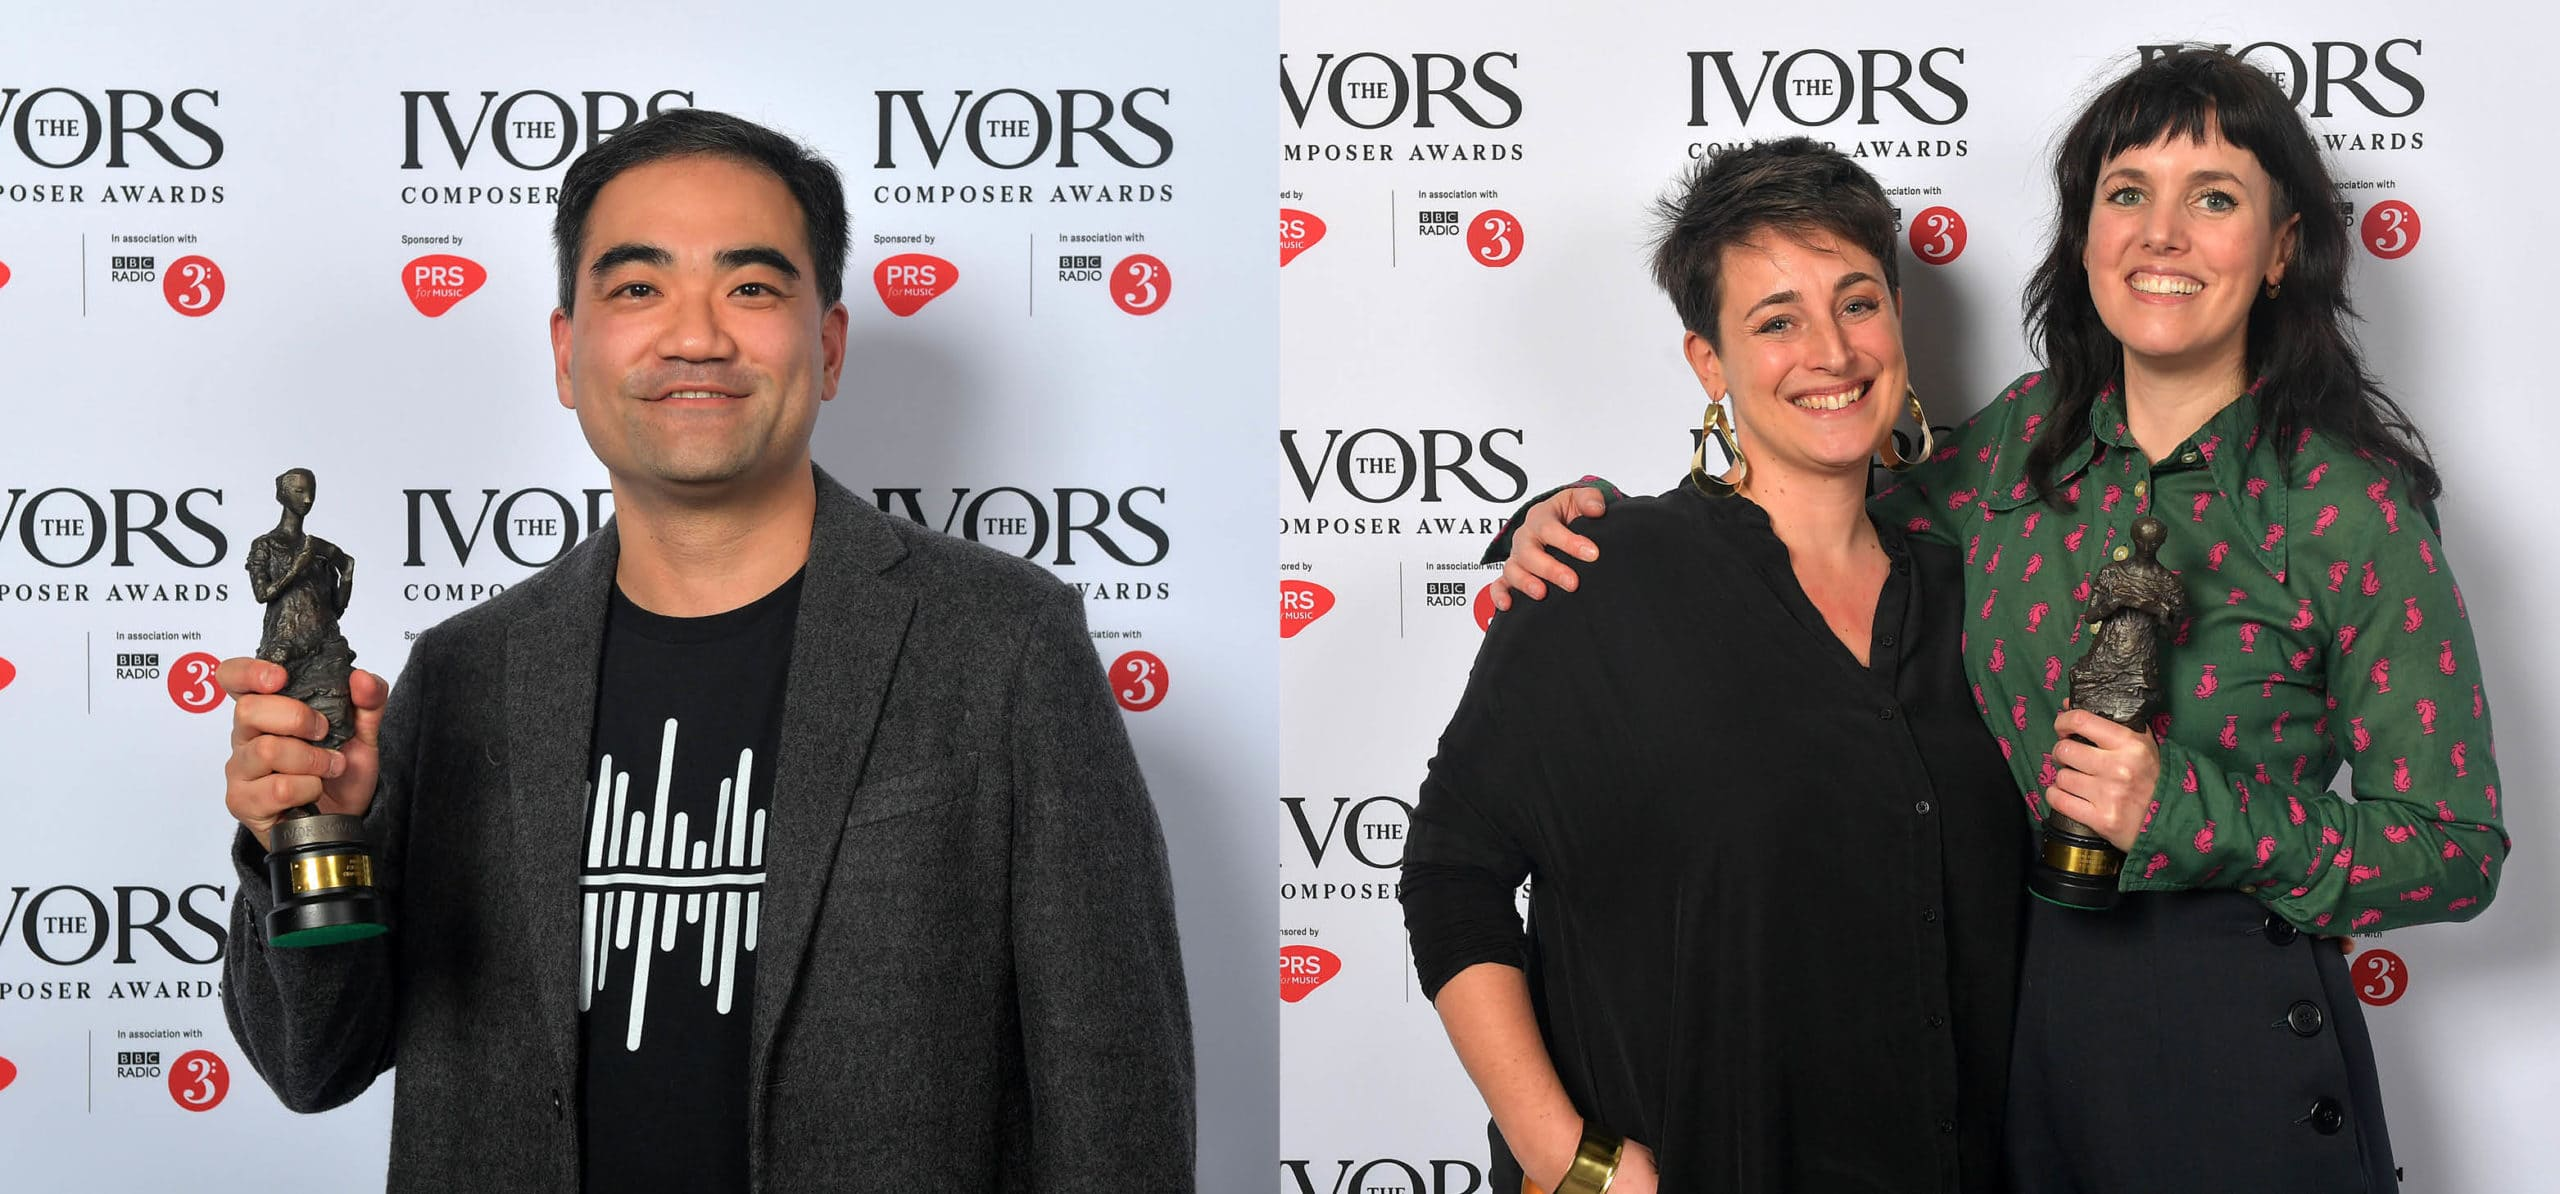 The Ivors Composer Awards 2019, presenting Ivors Novello Awards for the first time in the event's history © Mark Allan